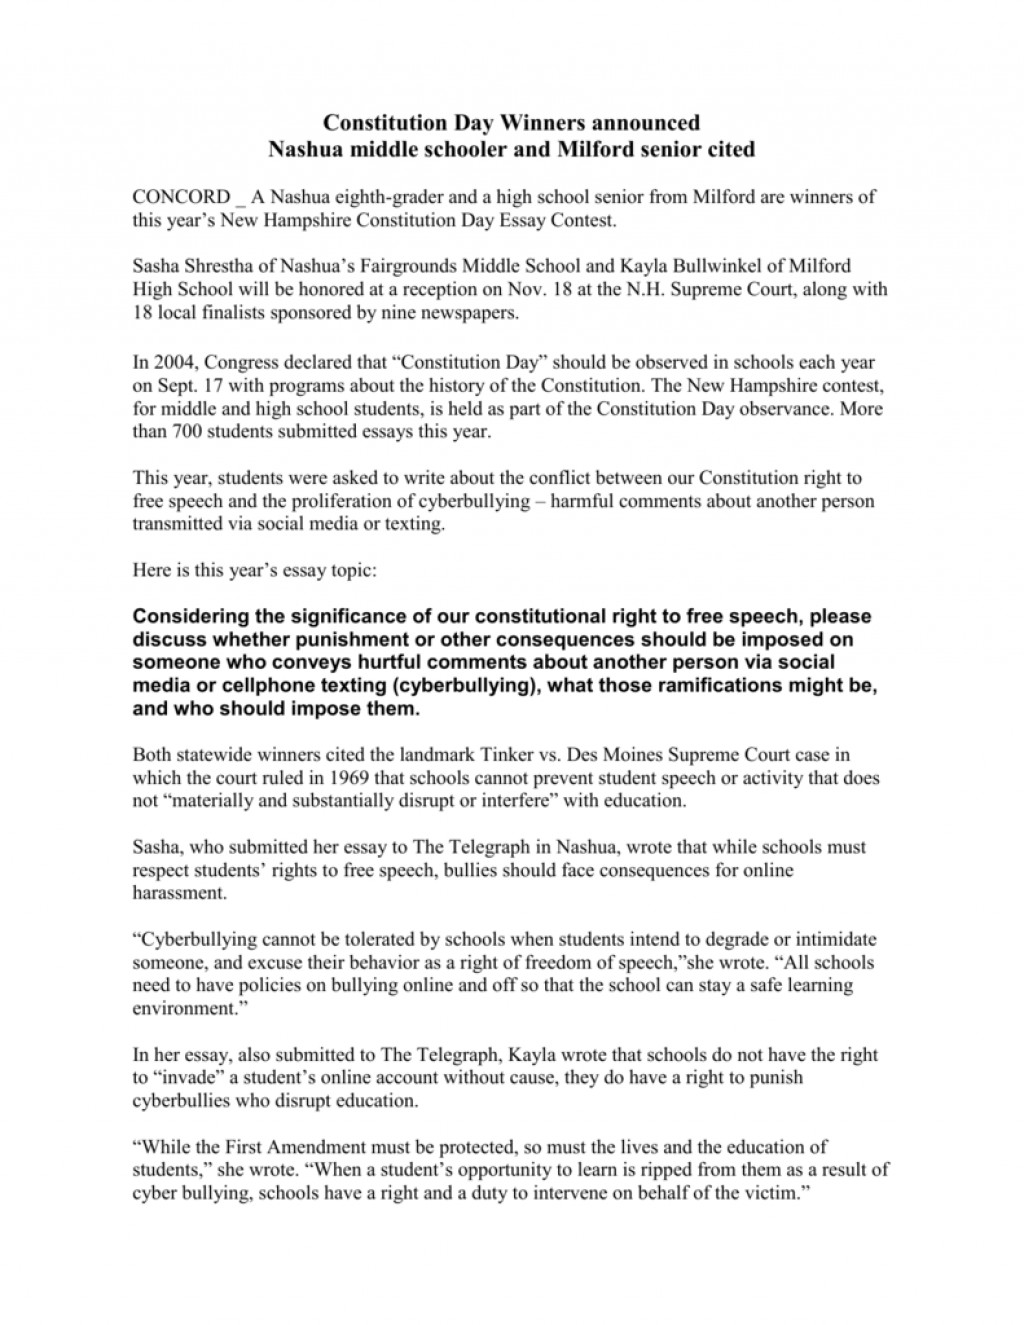 010 Cyberbullying Research Paper Awesome Questions Large